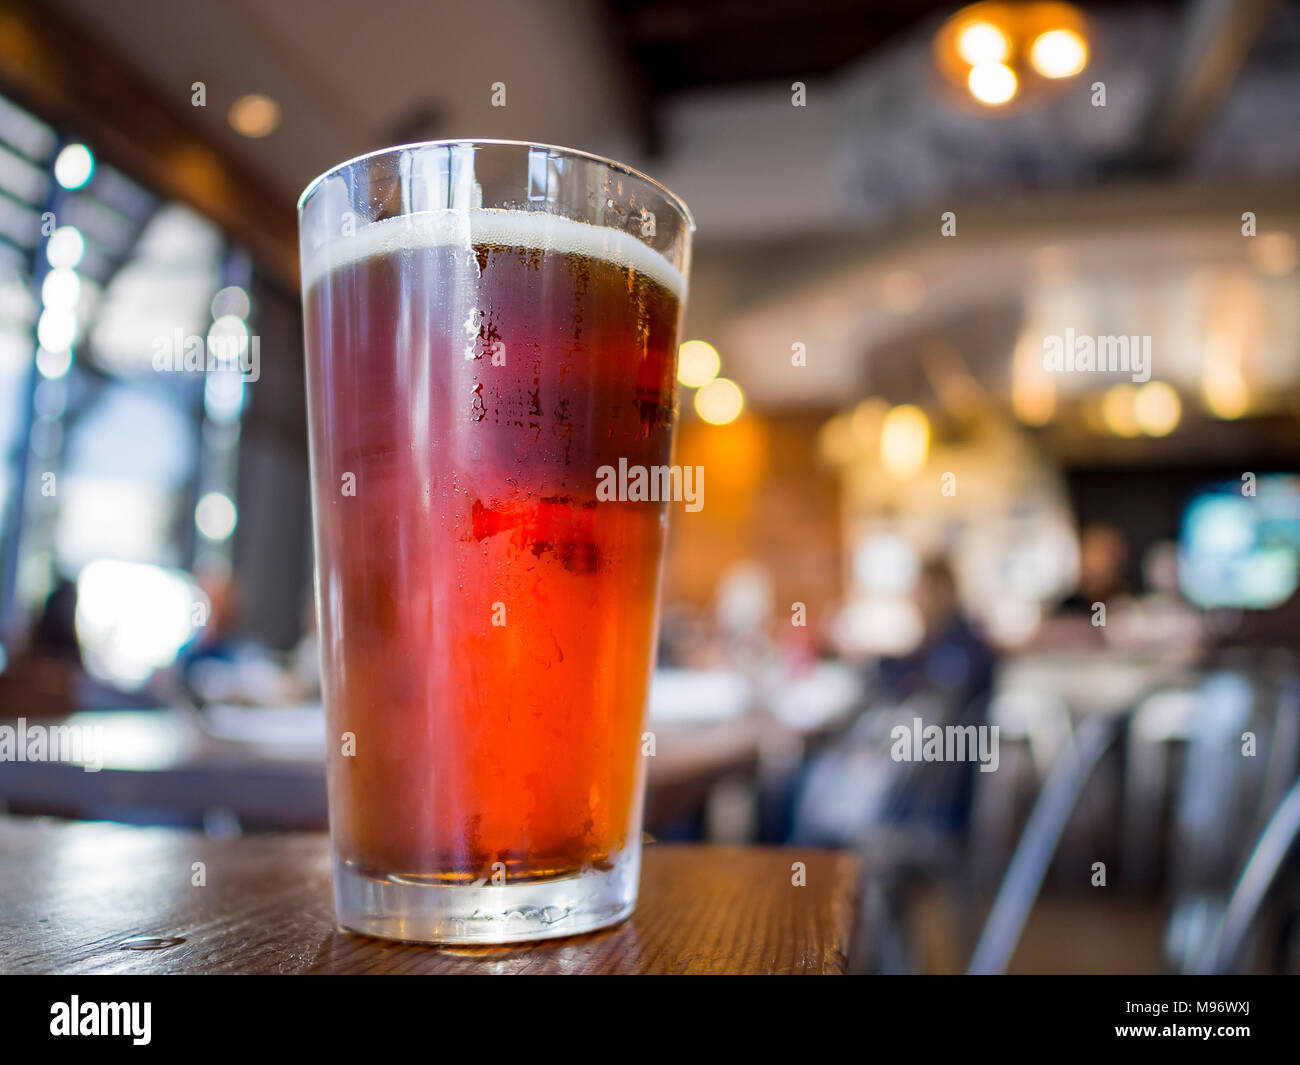 Close up shot of a glass of cold IPA beer, drink at Los Angeles - Stock Image